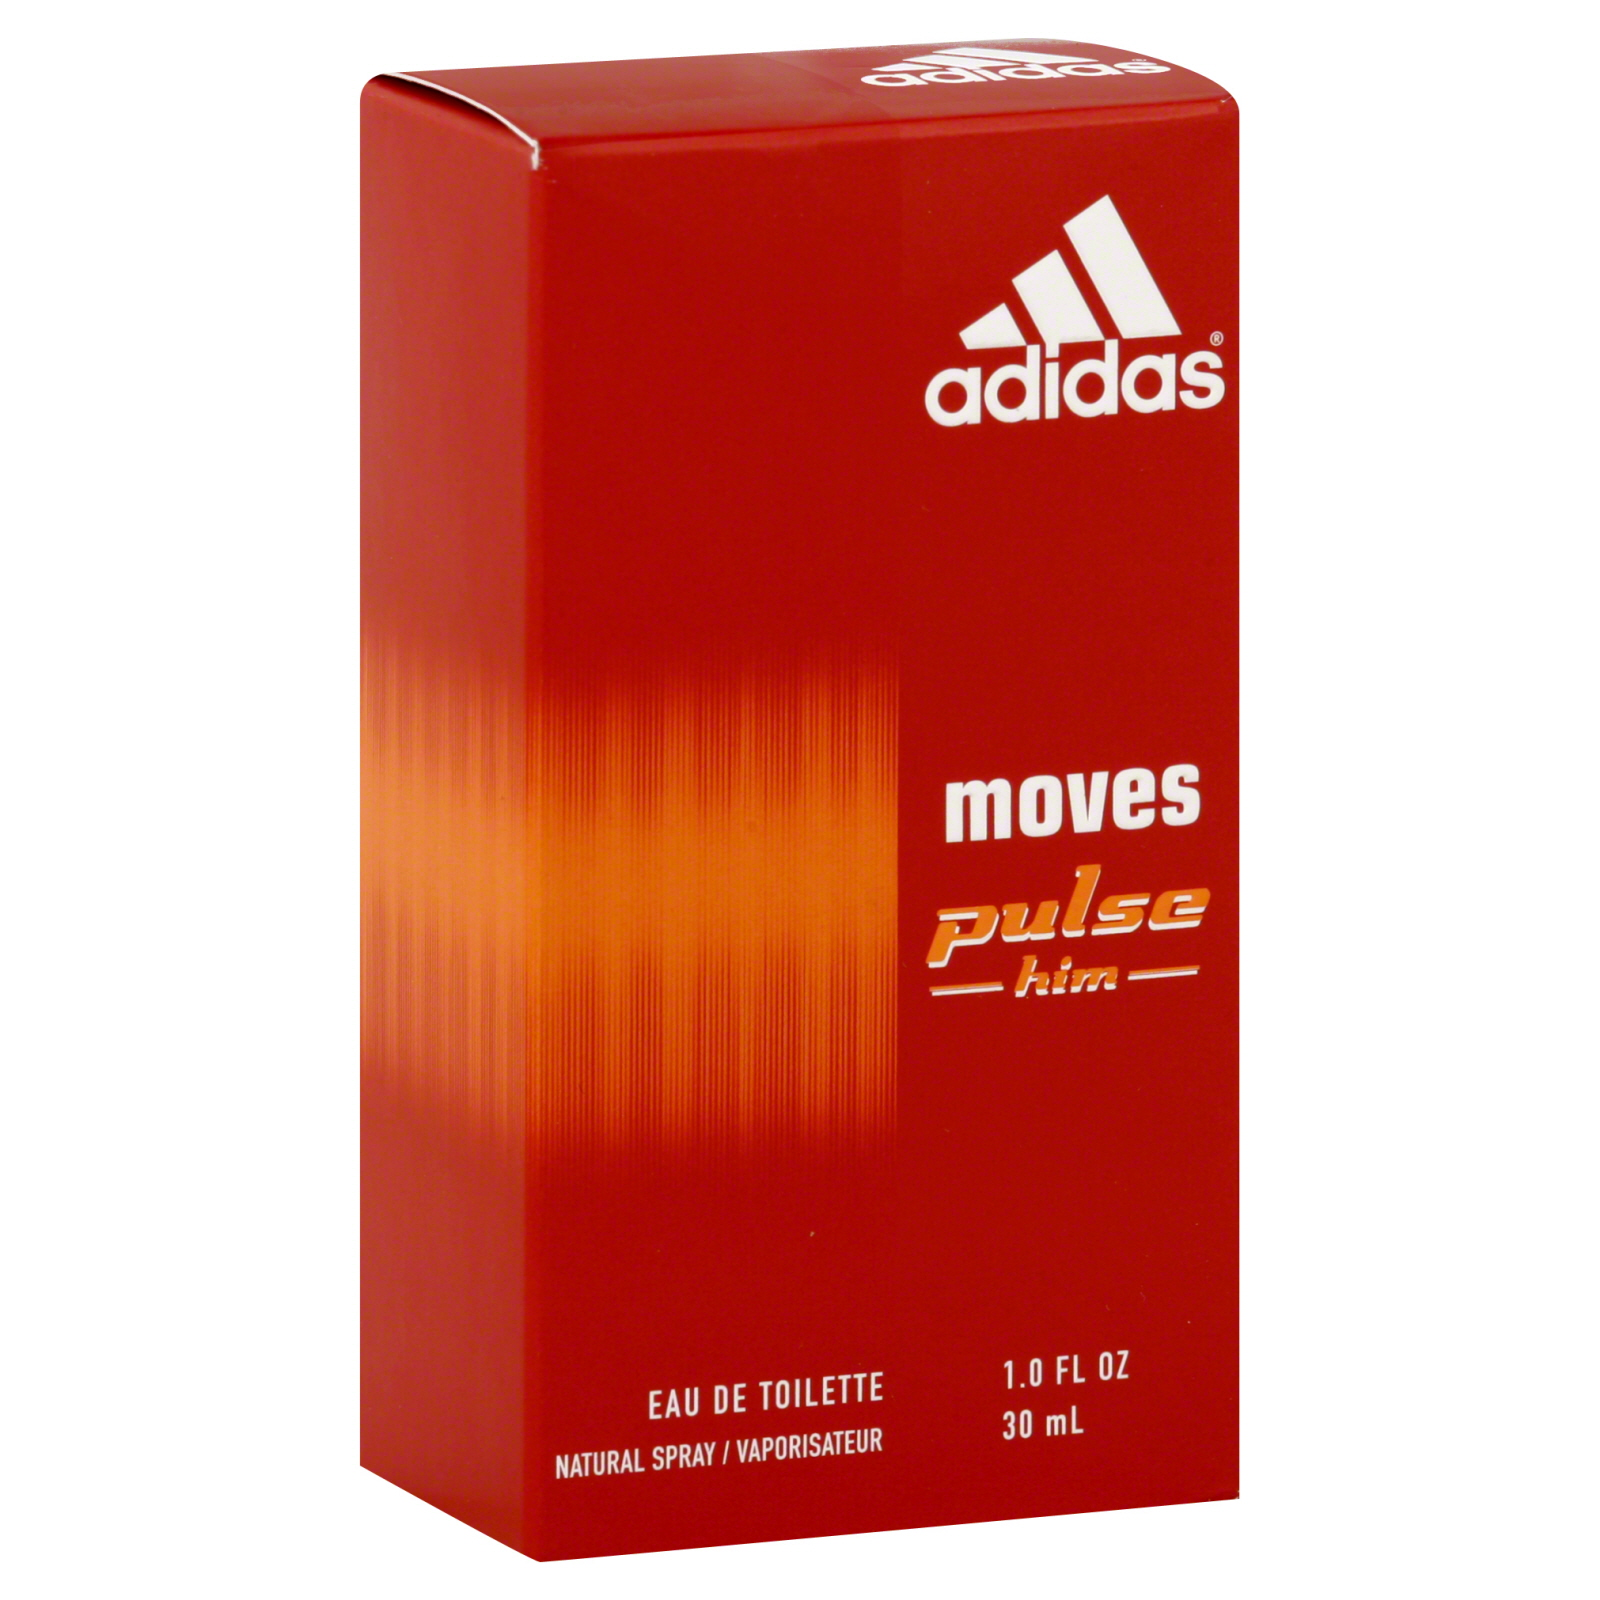 Adidas  Moves Pulse Him Eau de Toilette